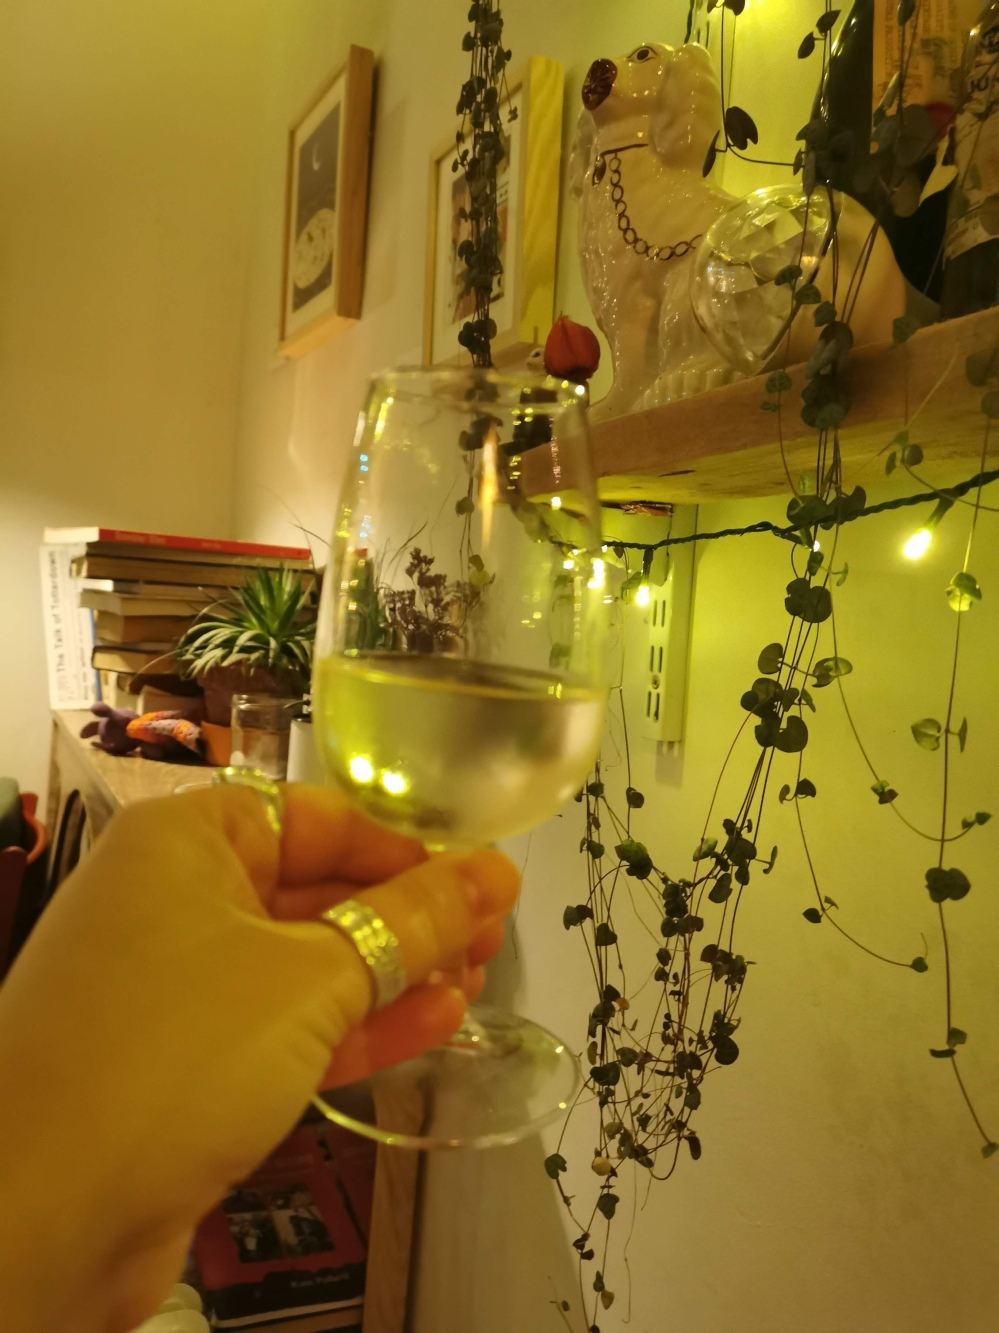 Holding up a glass with background